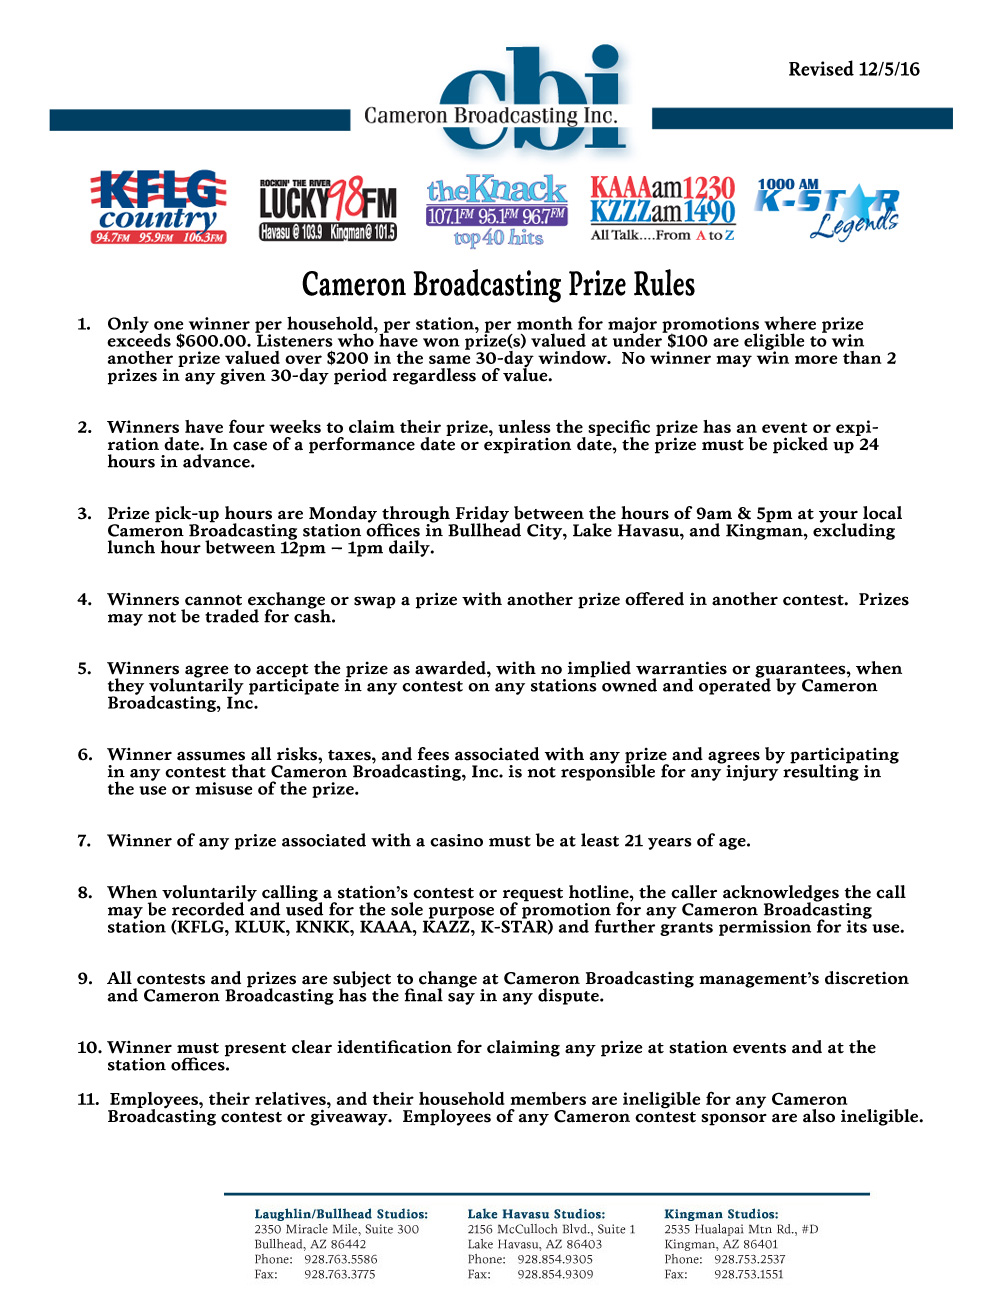 Cameron Broadcasting Generic Contest Rules